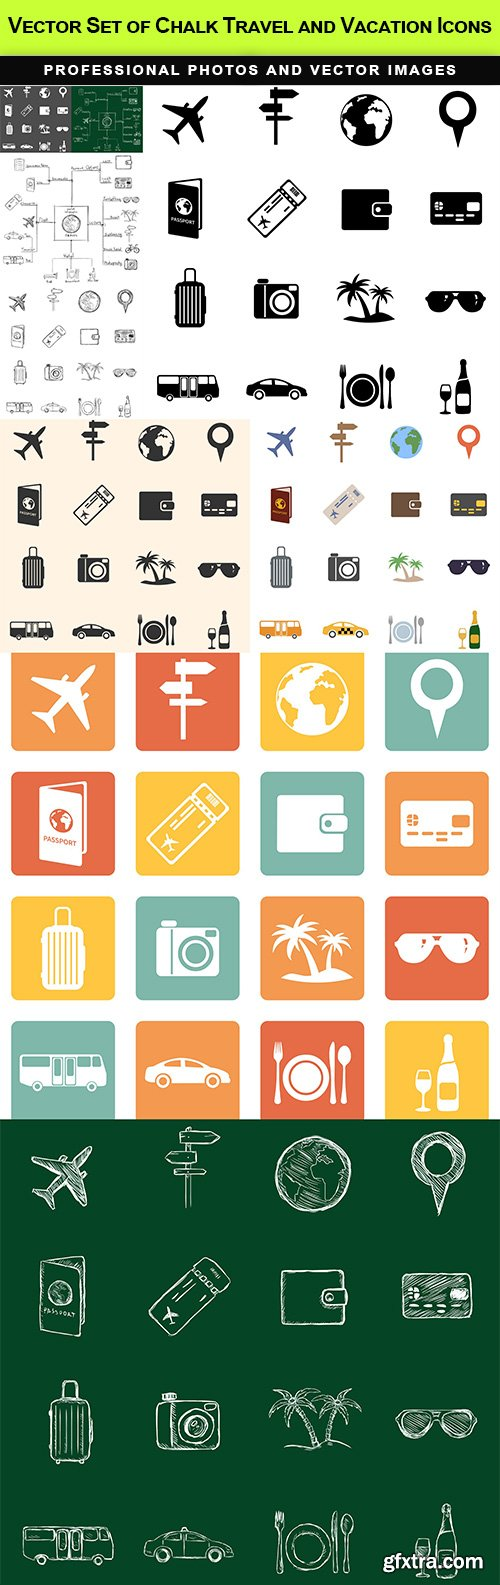 Vector Set of Chalk Travel and Vacation Icons